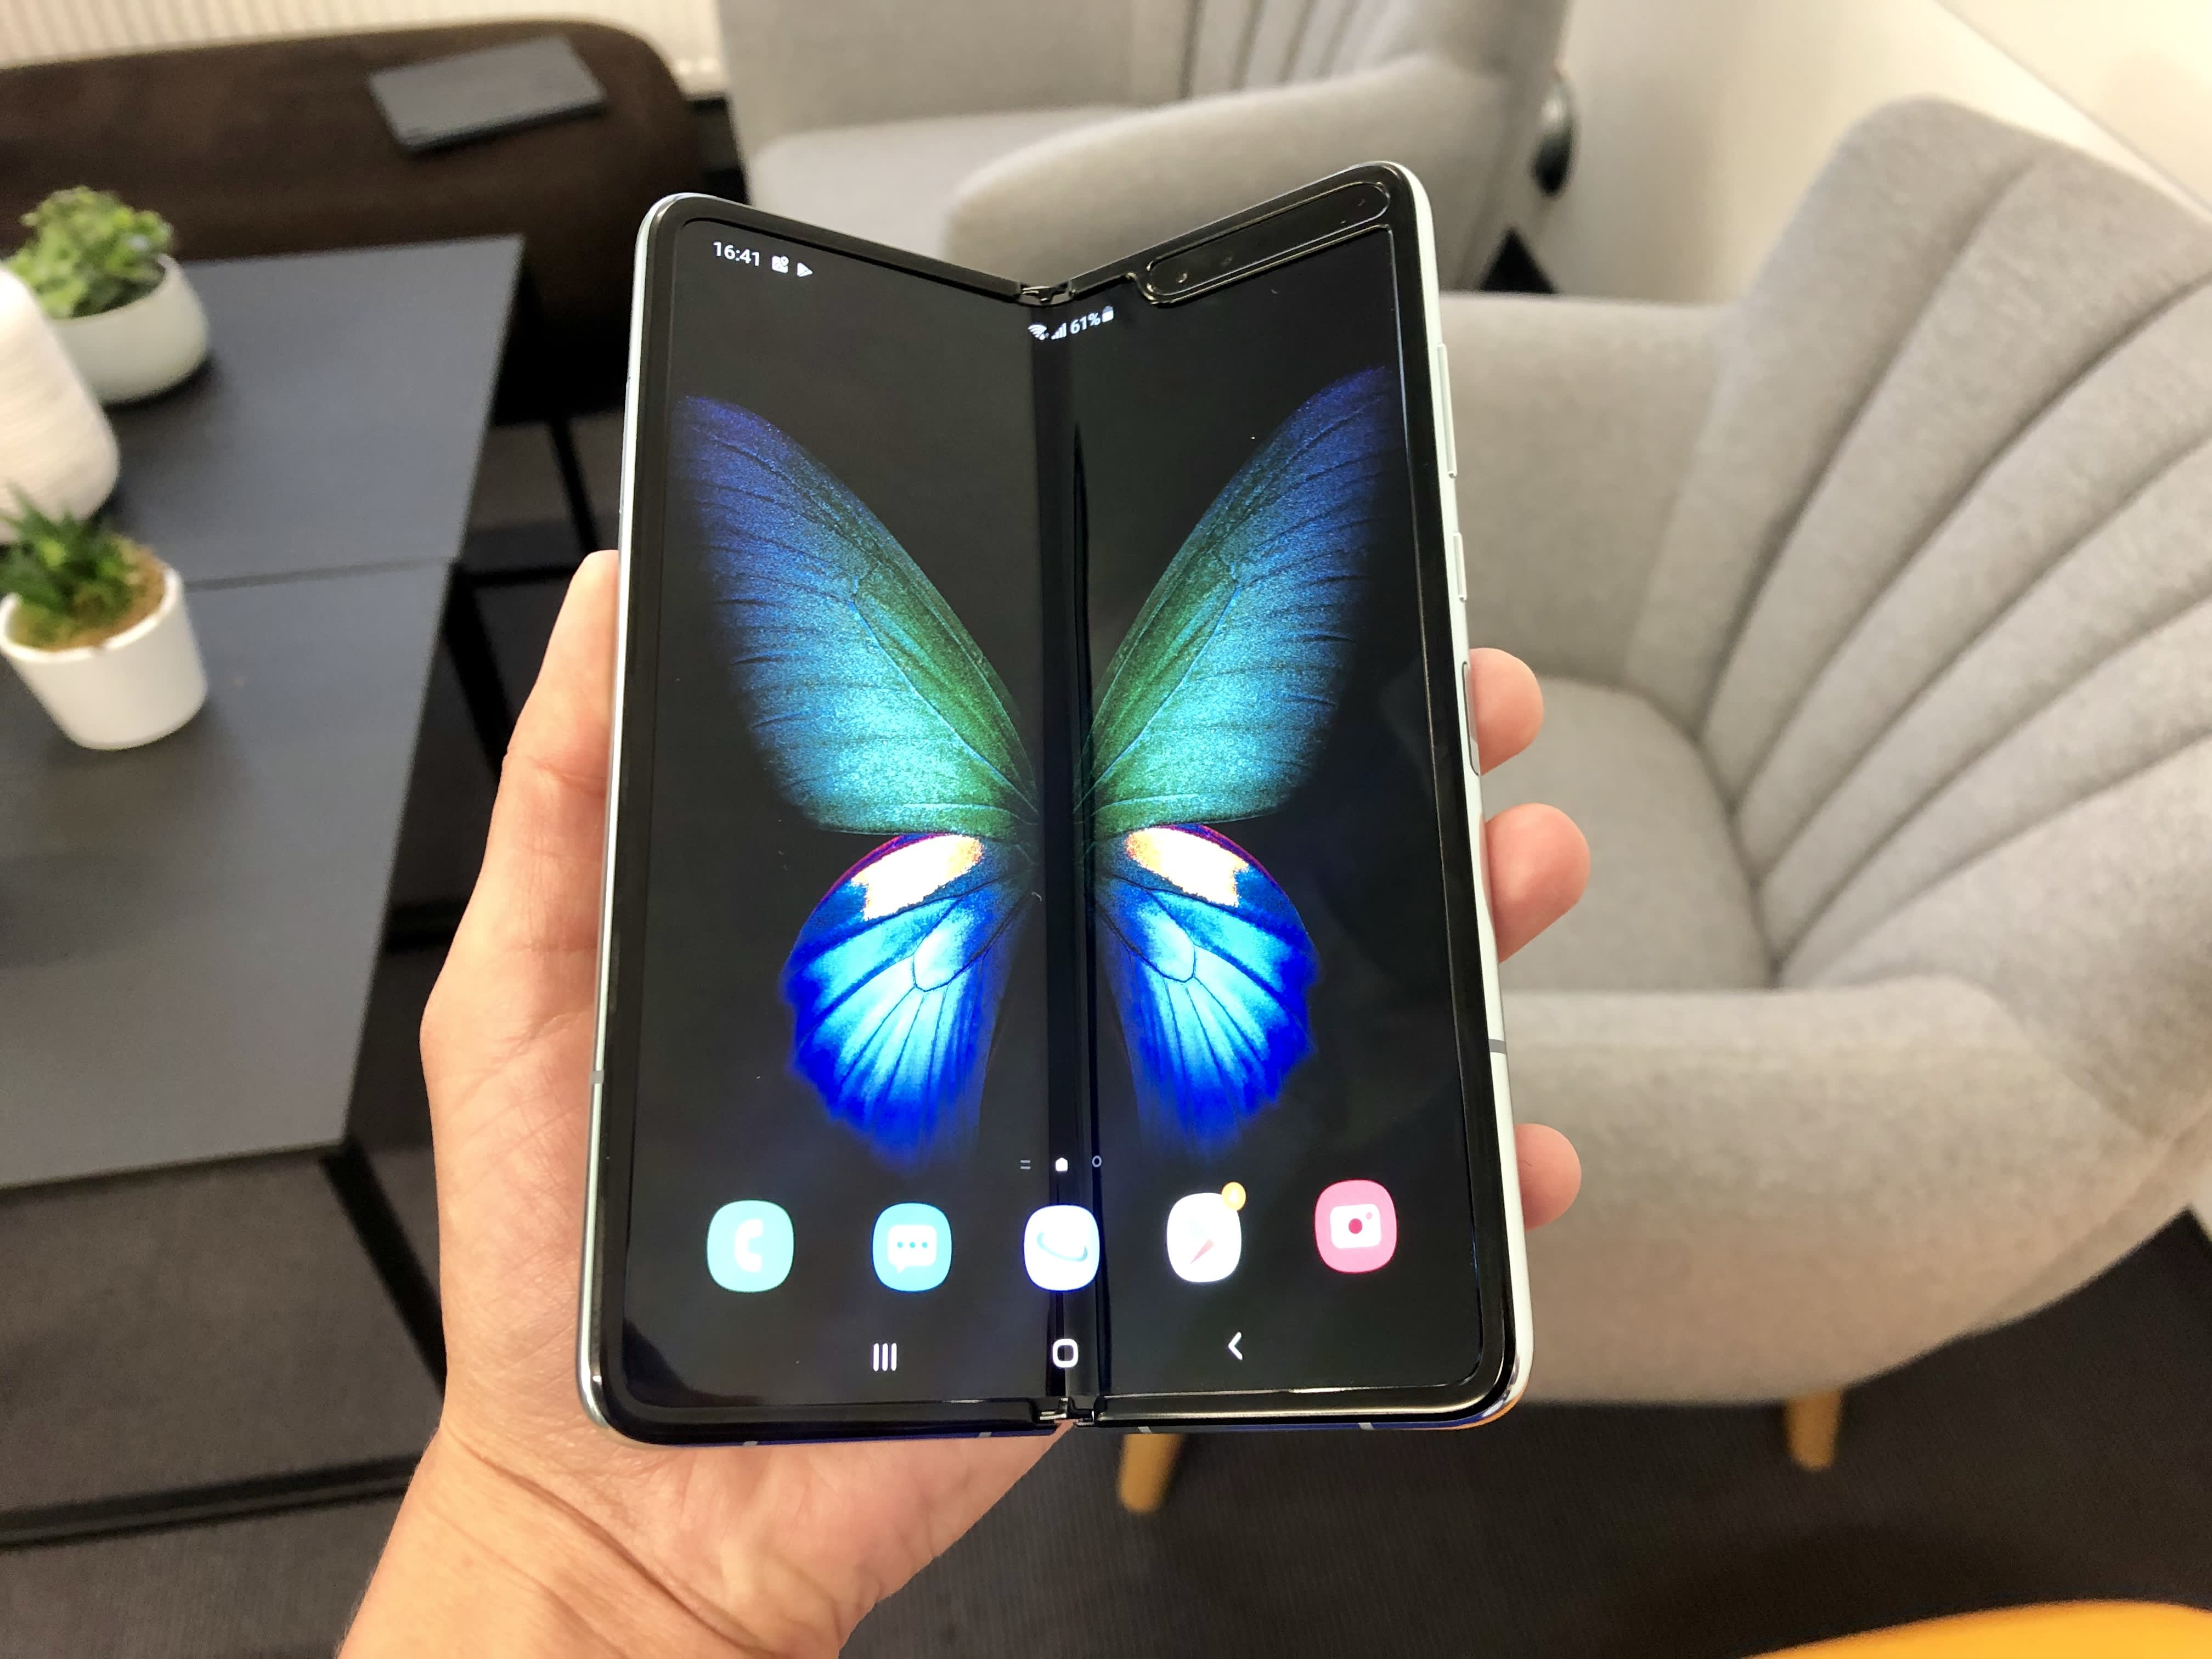 The 3 things Samsung did to try to fix the issues with its Galaxy Fold